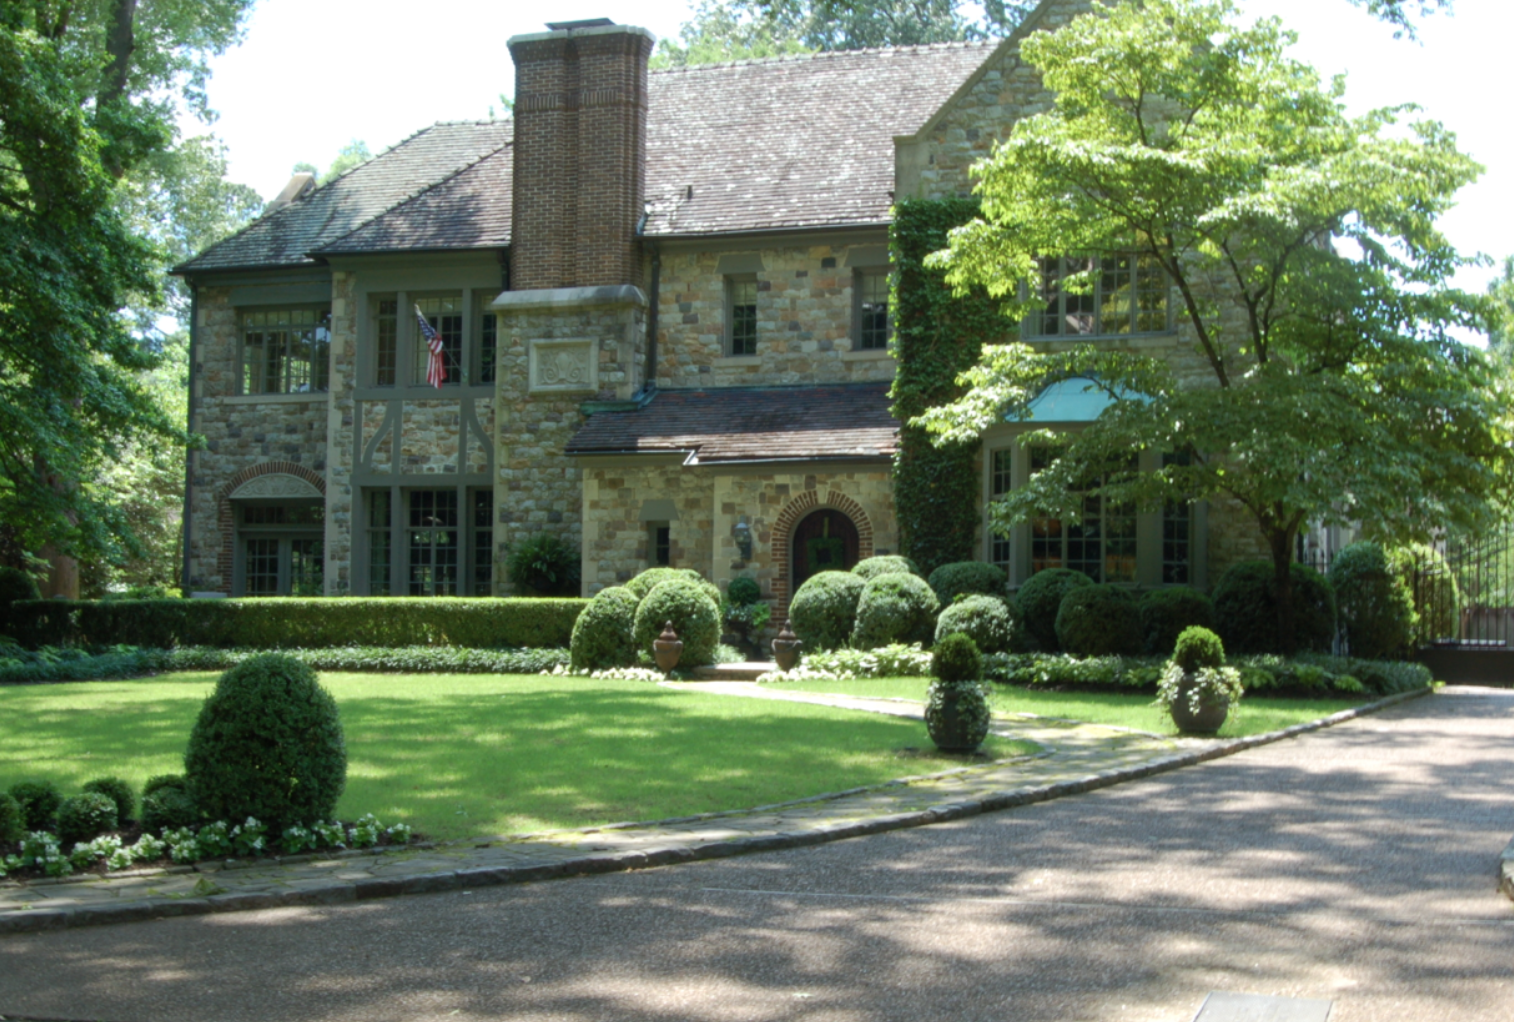 Real Estate Porn: A Tennessee Castle with a Bristol Motor Way Replica and a Frank Sinatra's CaliforniaPad